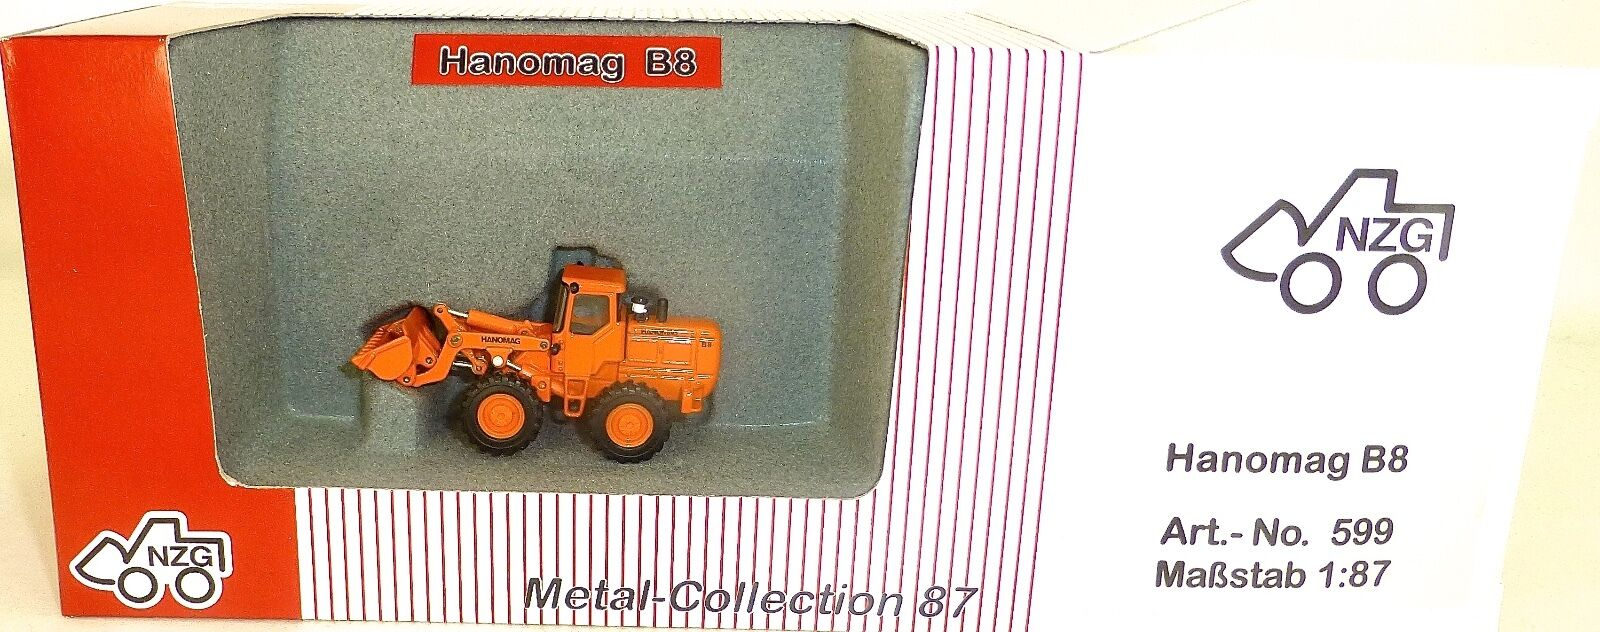 Hanomag Hanomag Hanomag B8 Radlader orange Nzg 599 Metal Collection 1 87 Ovp Ld2 Μ 7689ae